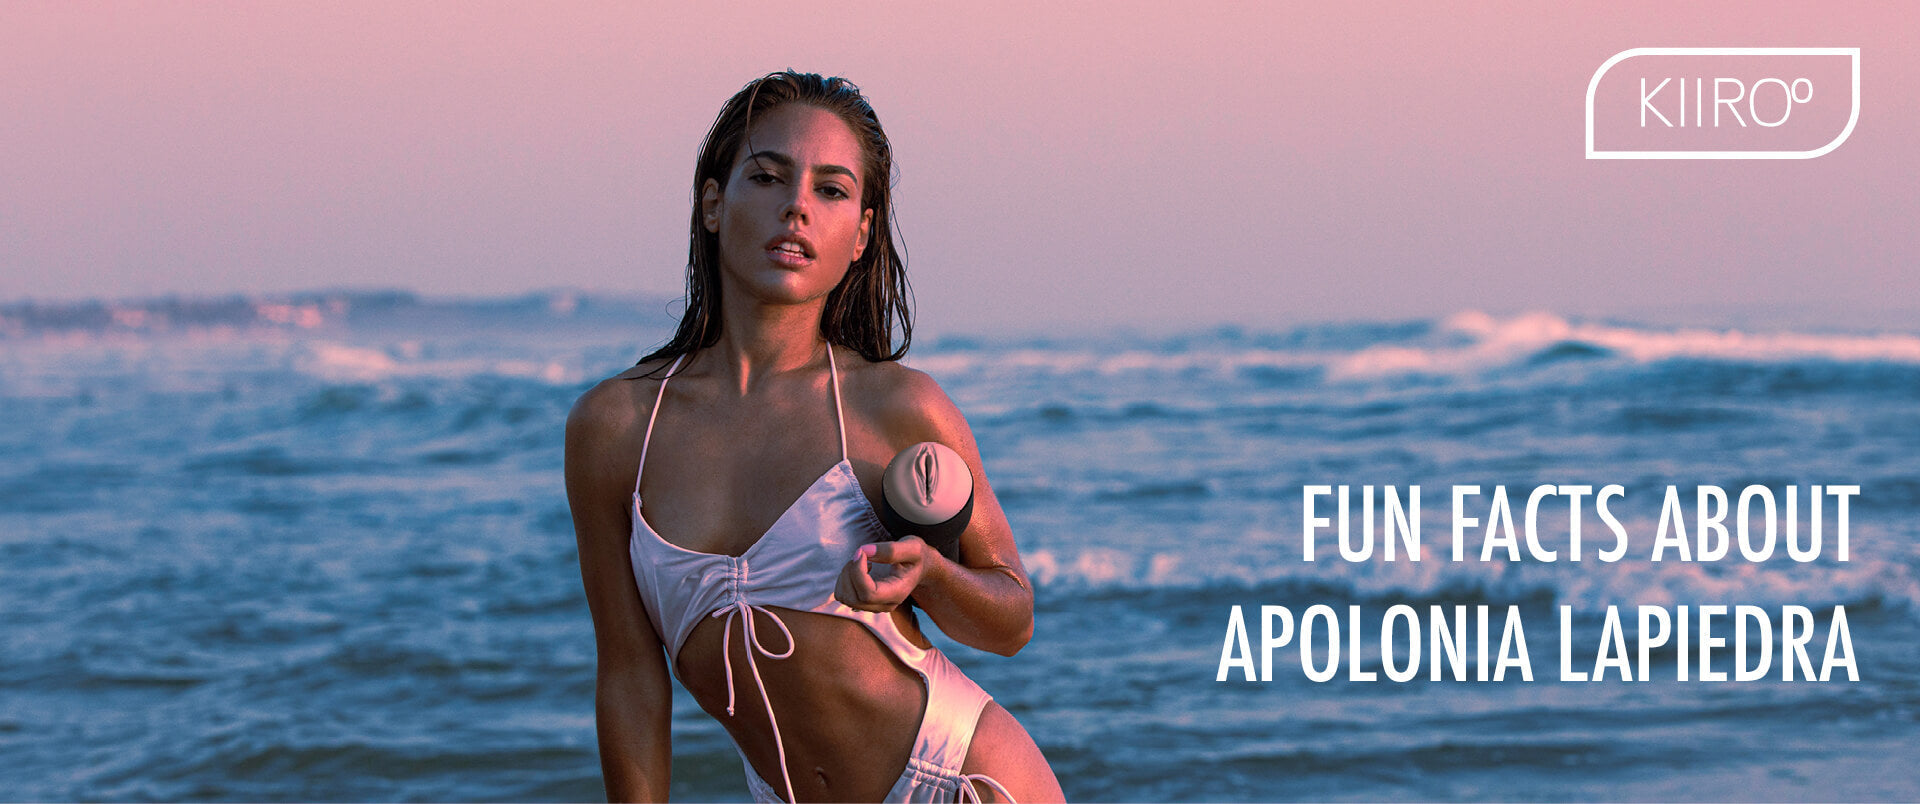 Apolonia Lapiedra on the beach with FeelApolonia stroker